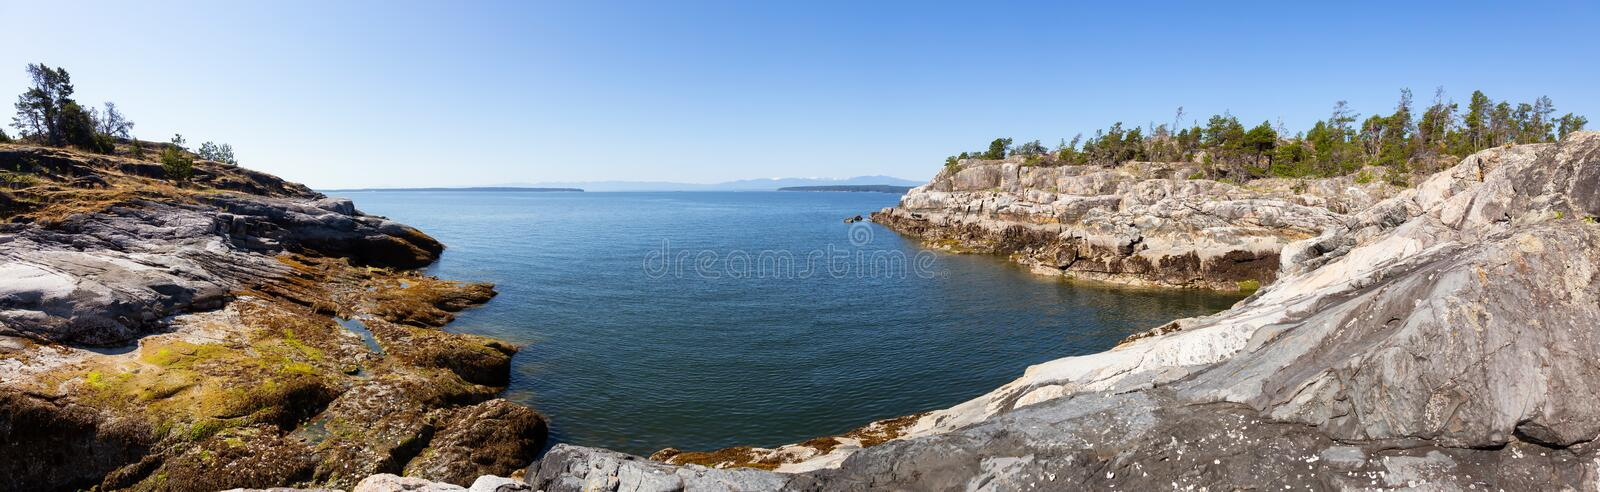 Rocky Island vicino a Powell River, costa del sole fotografia stock